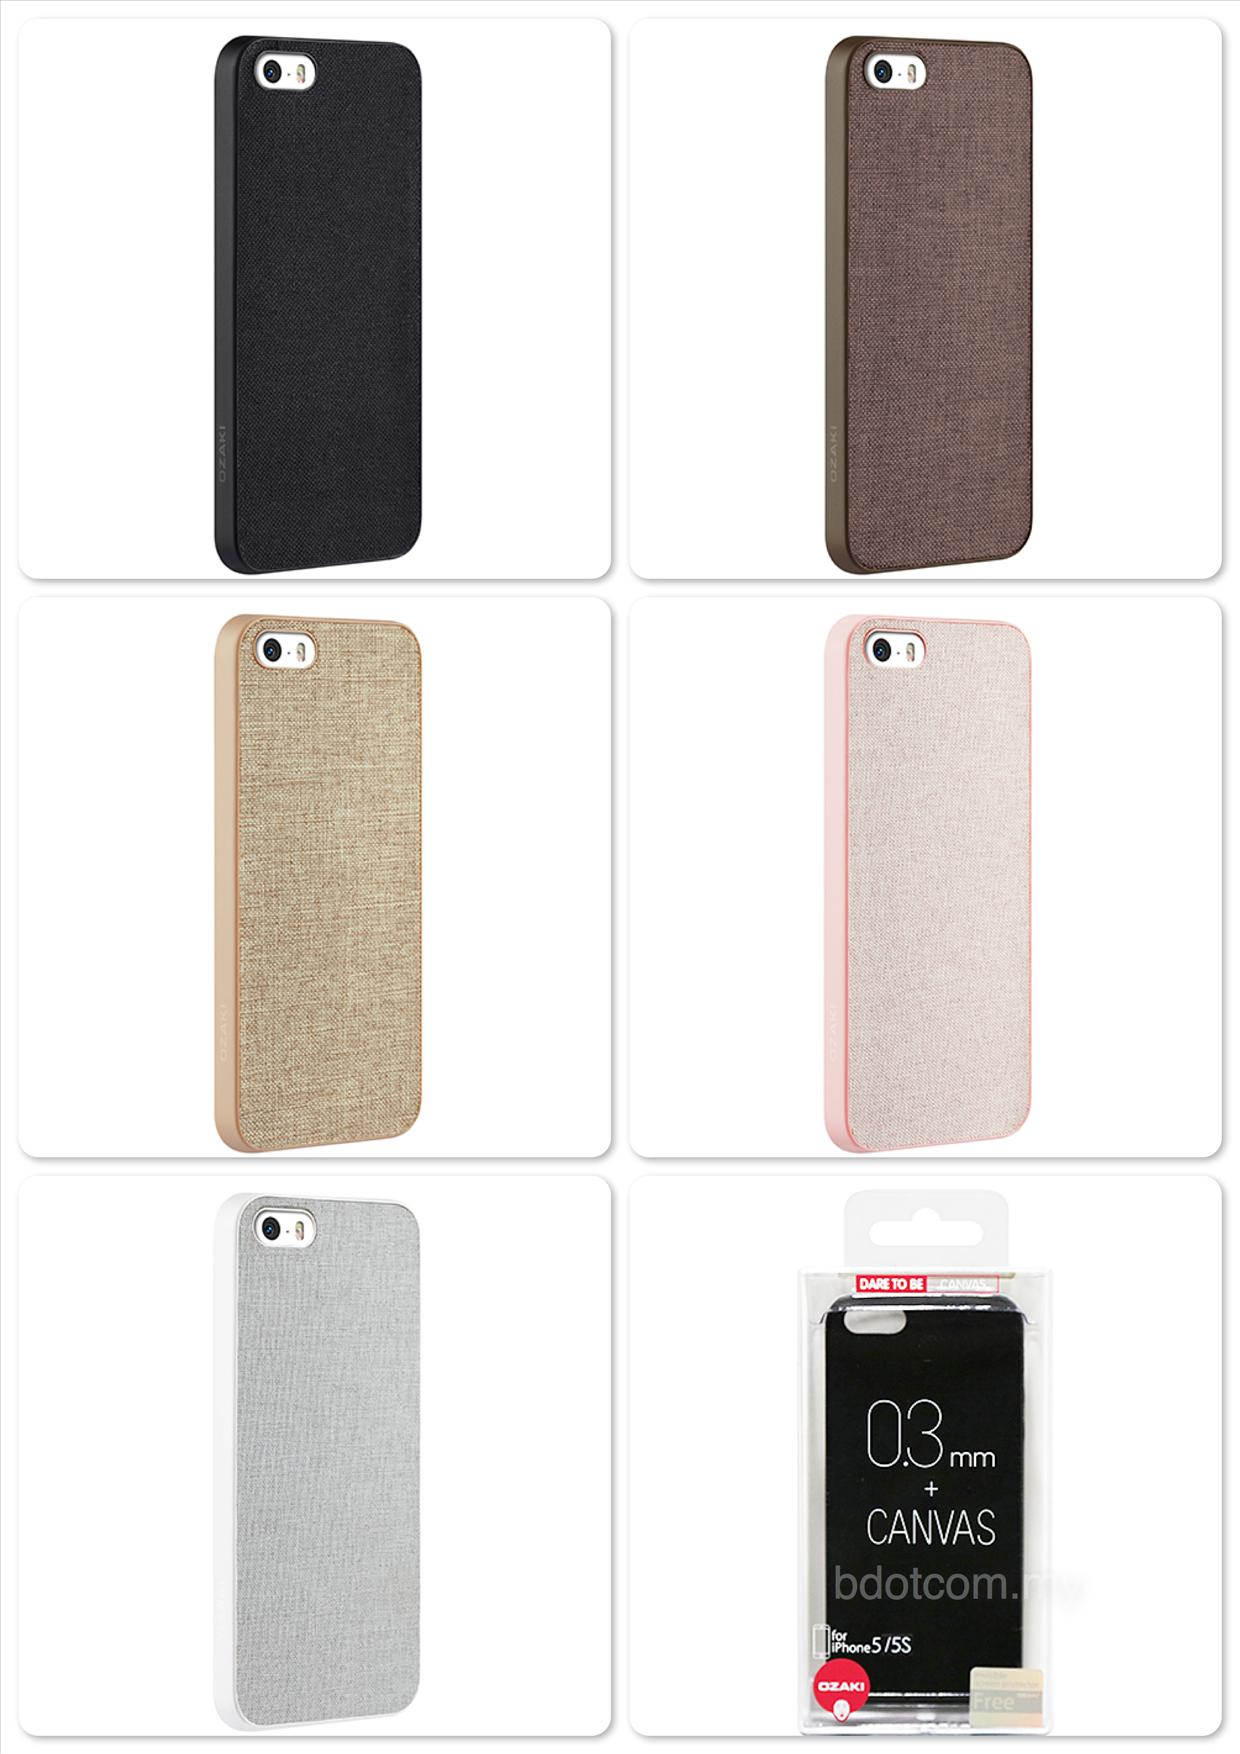 Bdotcom = Apple iPhone 5/5s Ozaki O!coat 0.3 + Canvas Ultra Slim Light